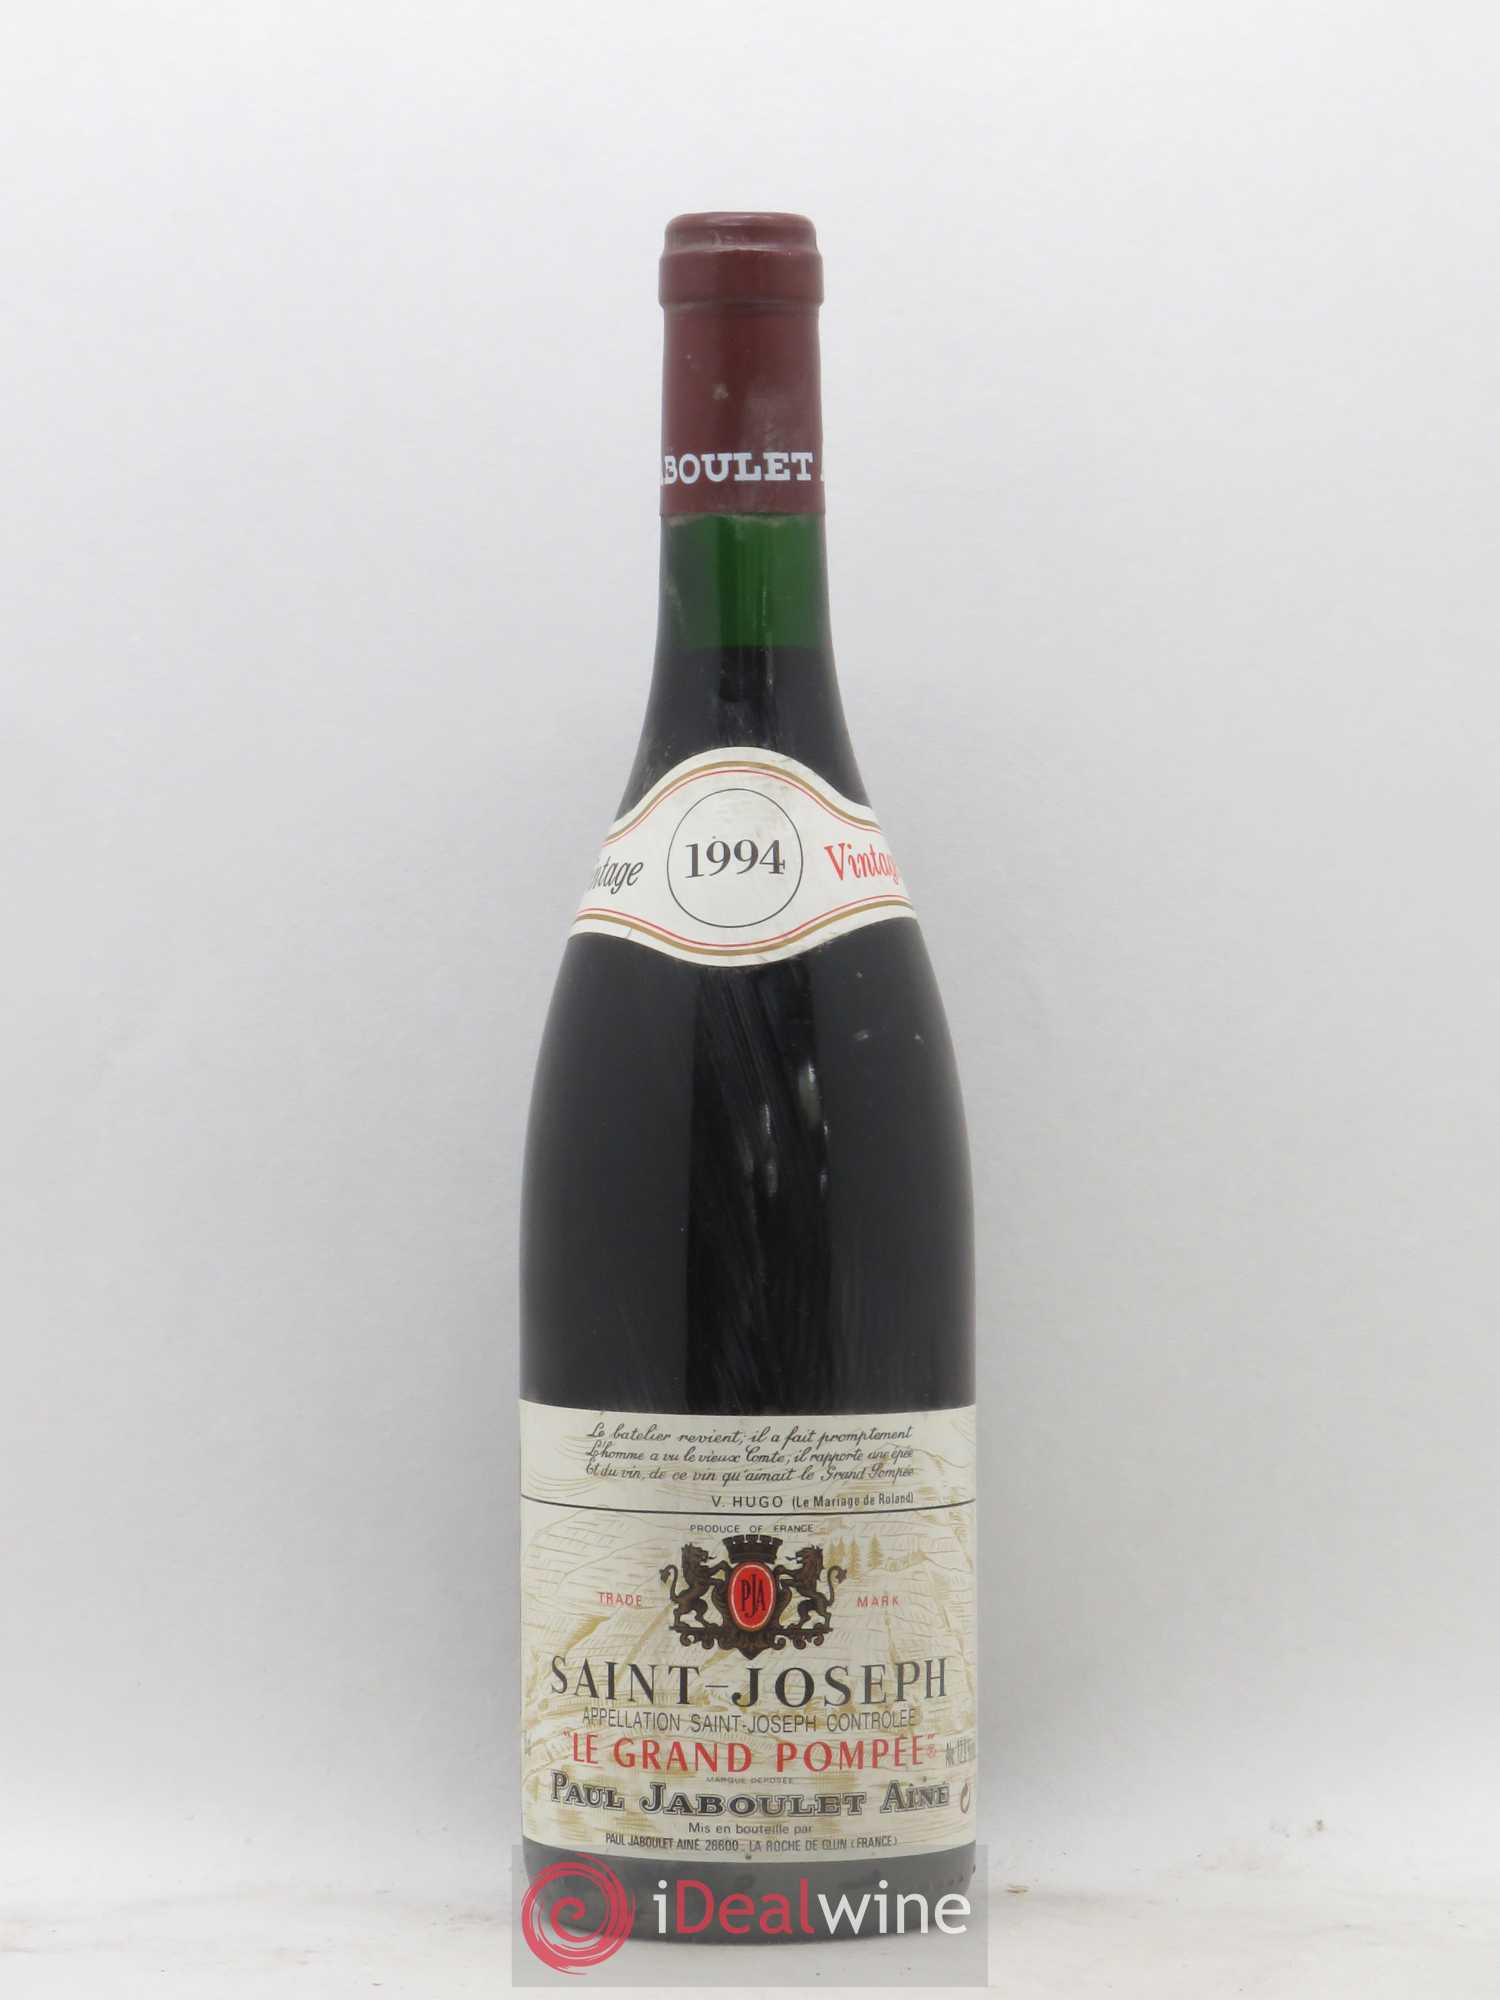 Saint-Joseph Le Grand Pompée Paul Jaboulet Ainé  1994 - Lot of 1 Bottle